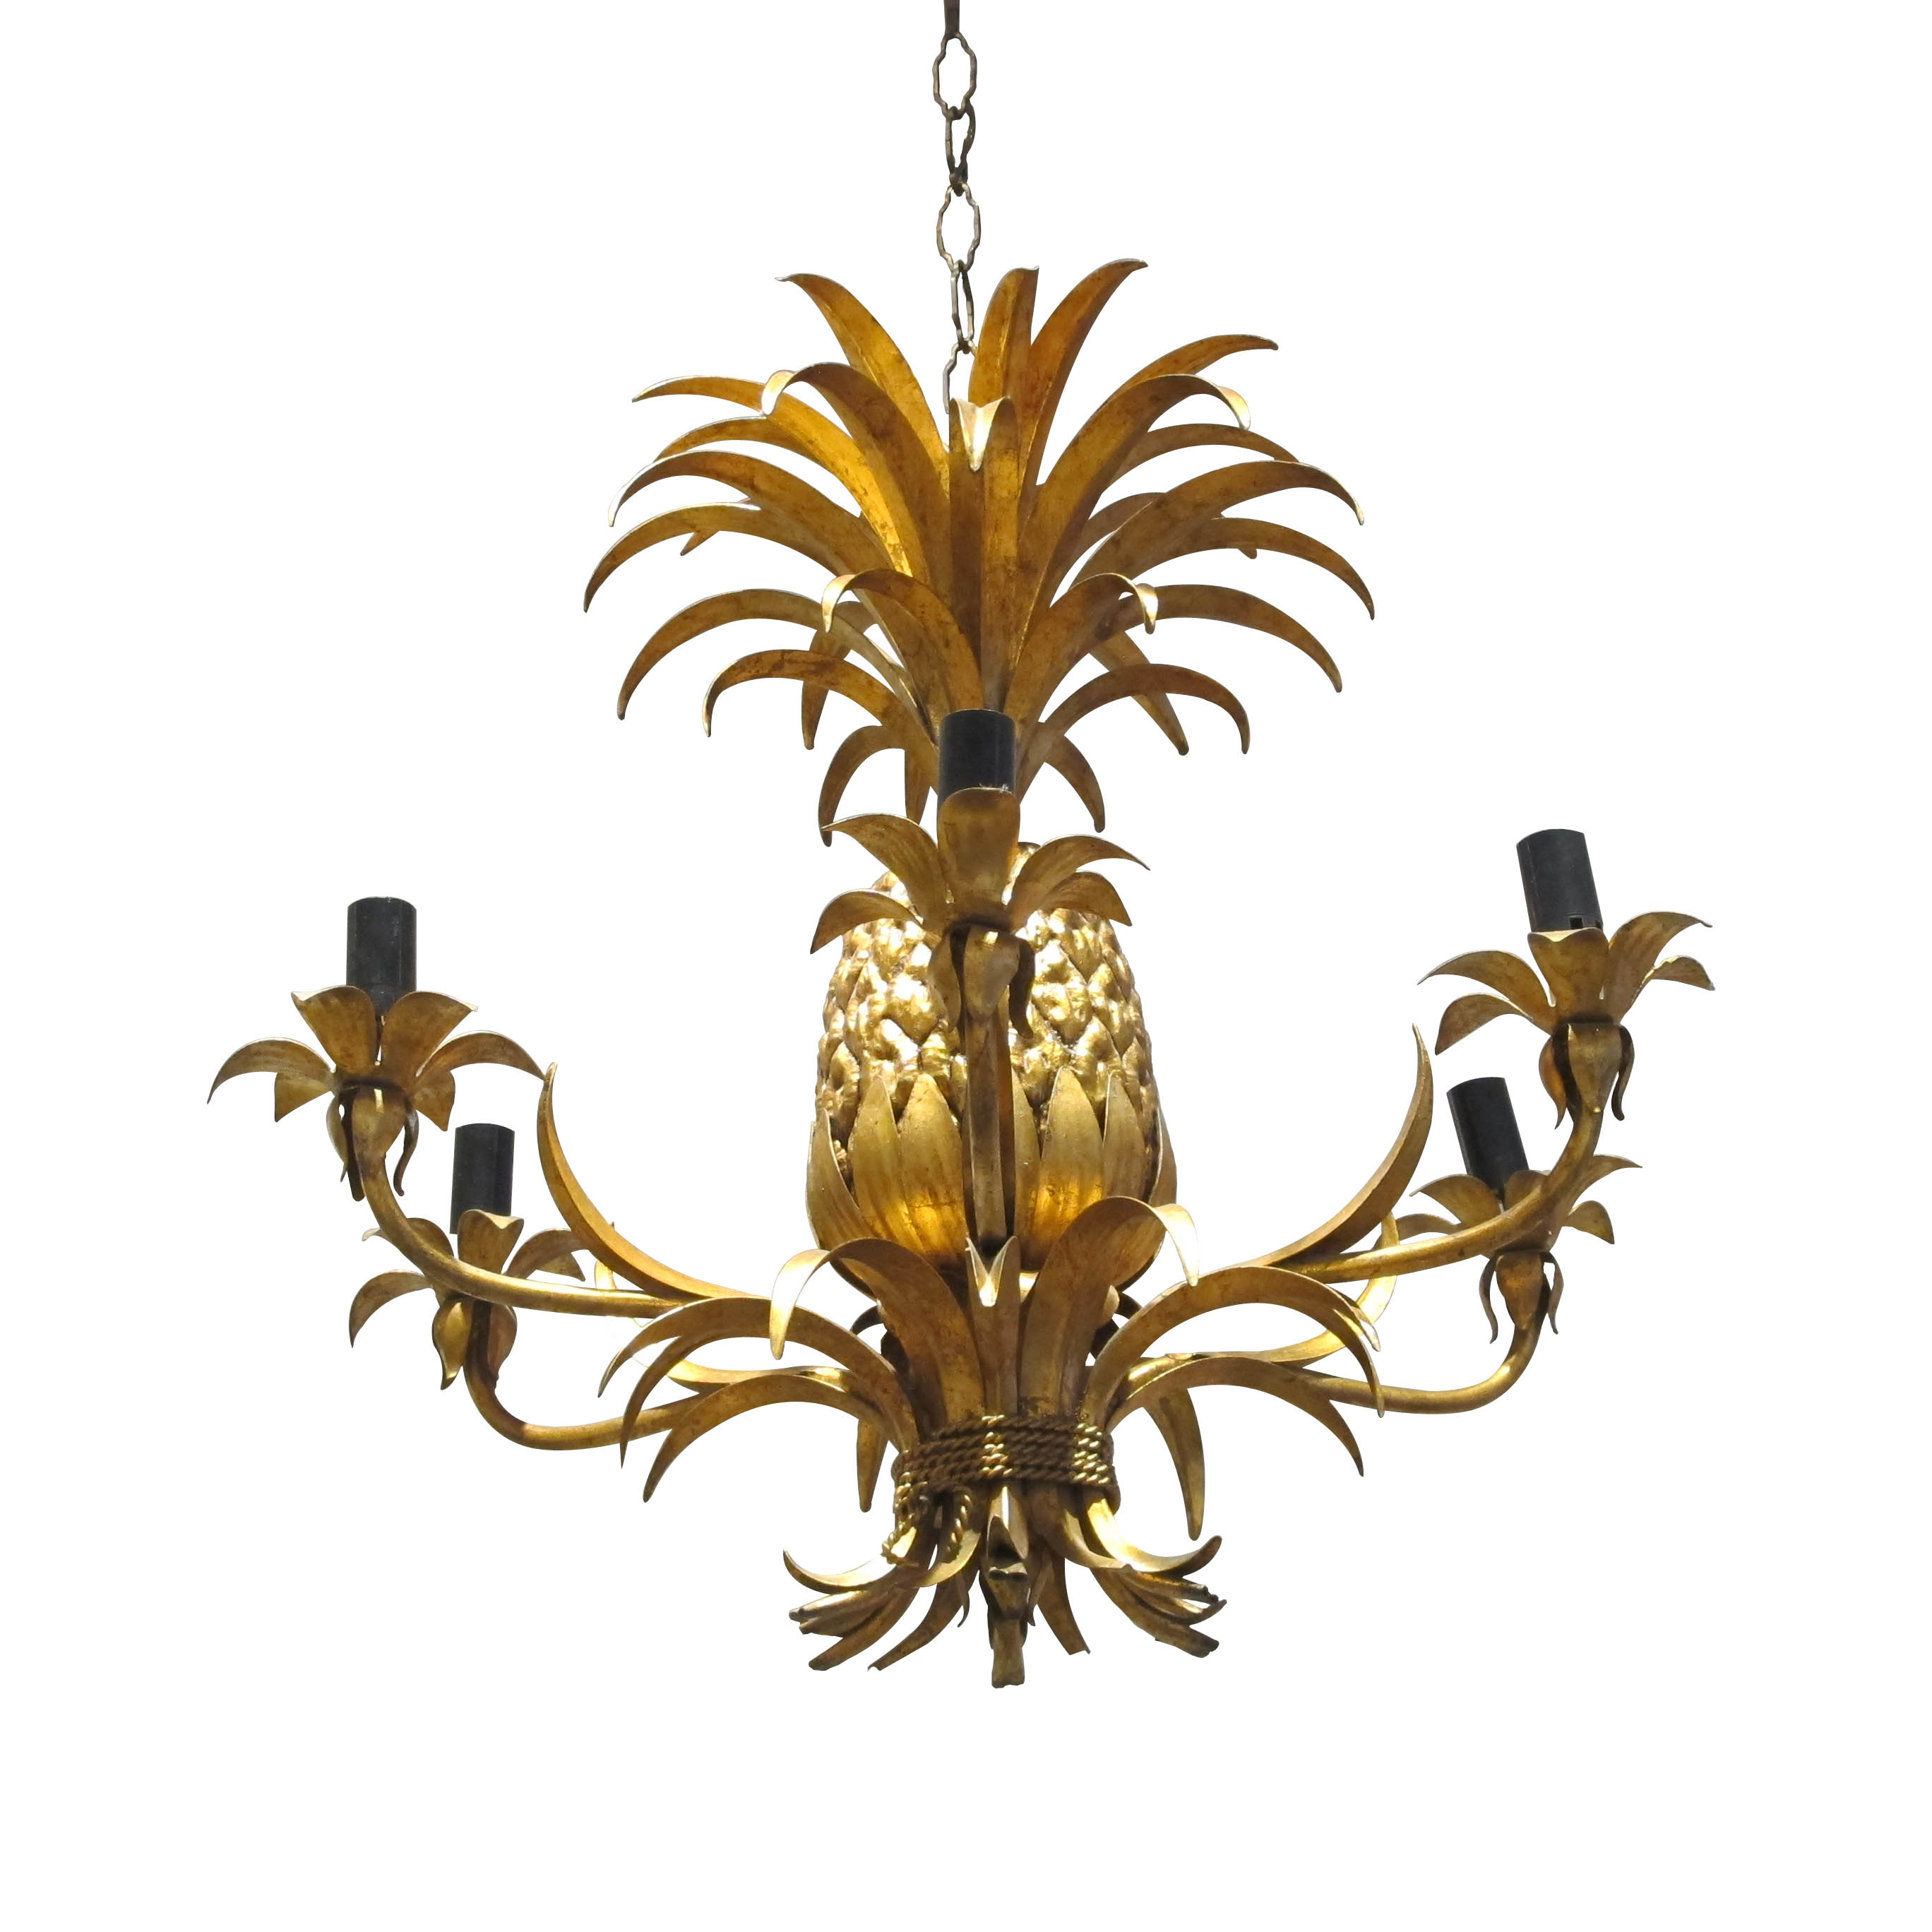 gold Italian Pineapple chandelier Les Trois Garcons Interiors